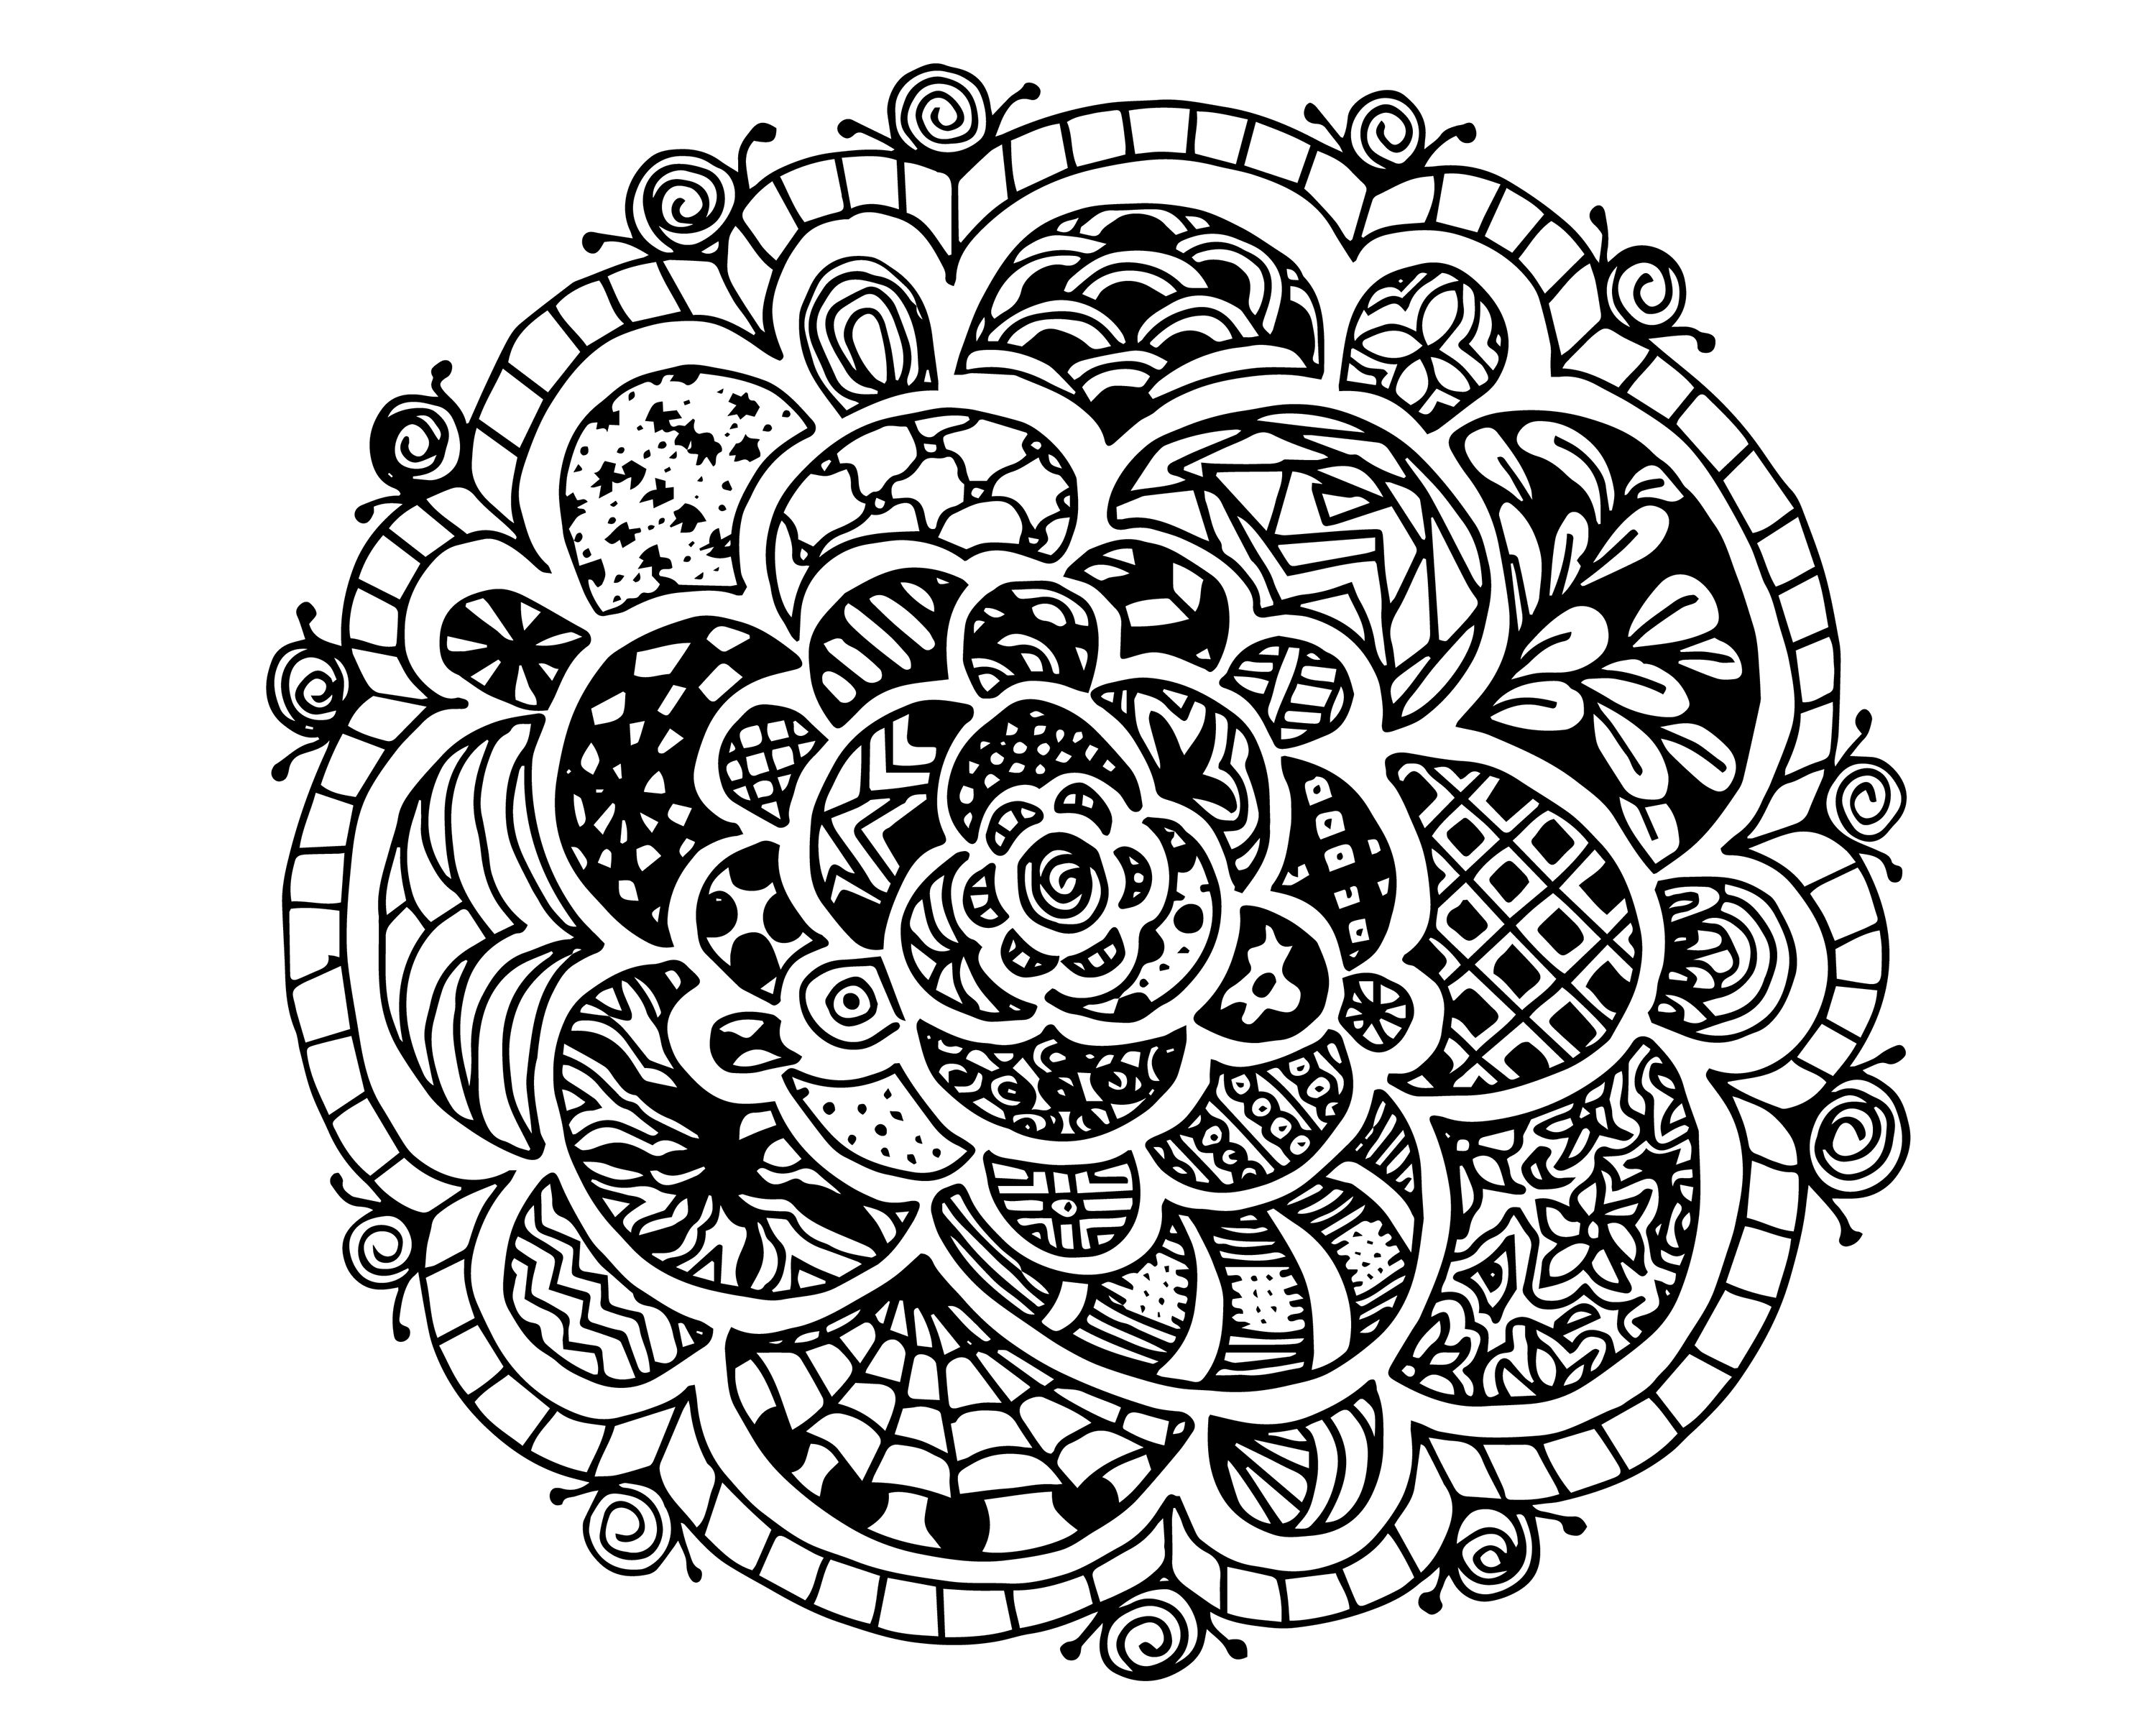 Printable coloring pages zen - Free Zen Rose Adult Coloring Page